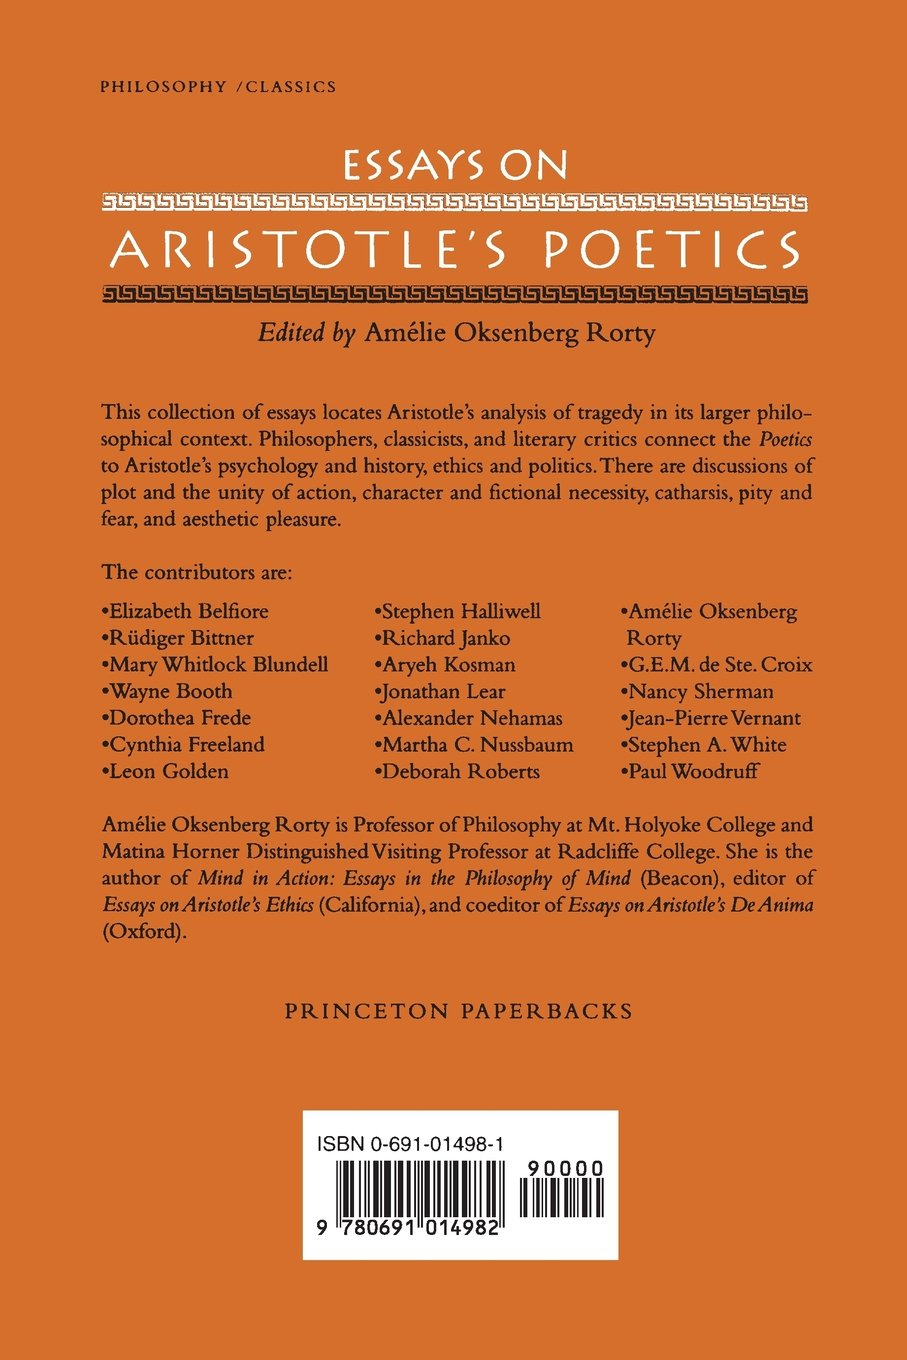 com essays on aristotle s poetics 9780691014982 am eacute lie  com essays on aristotle s poetics 9780691014982 ameacutelie oksenberg rorty books